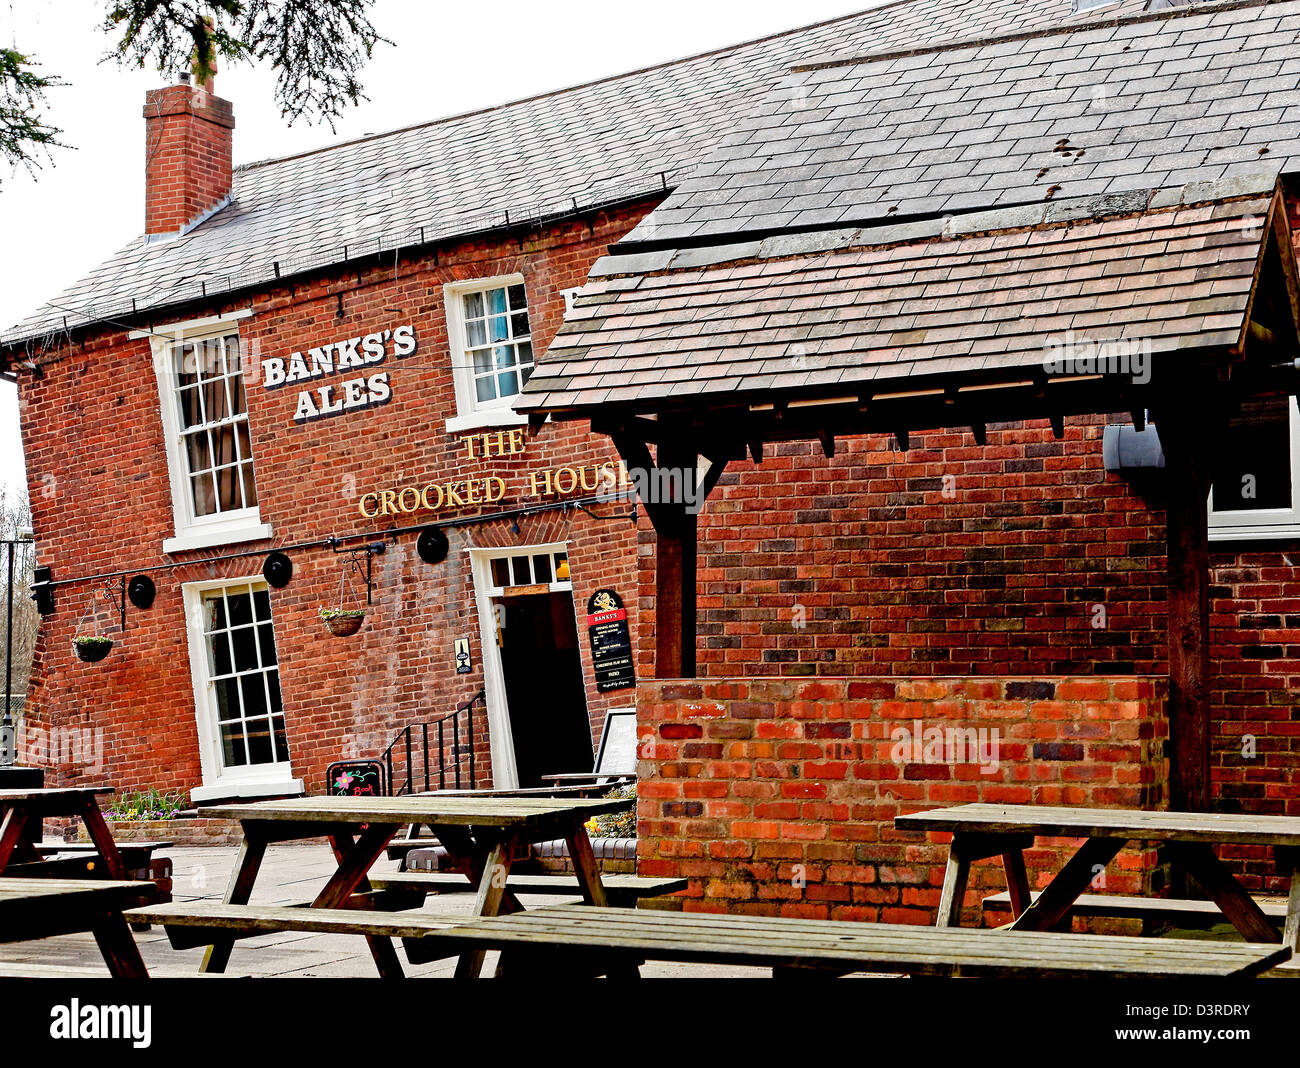 The Crooked House pub in Himley, West Midlands. The building has been affected by mining subsidence over many years - Stock Image